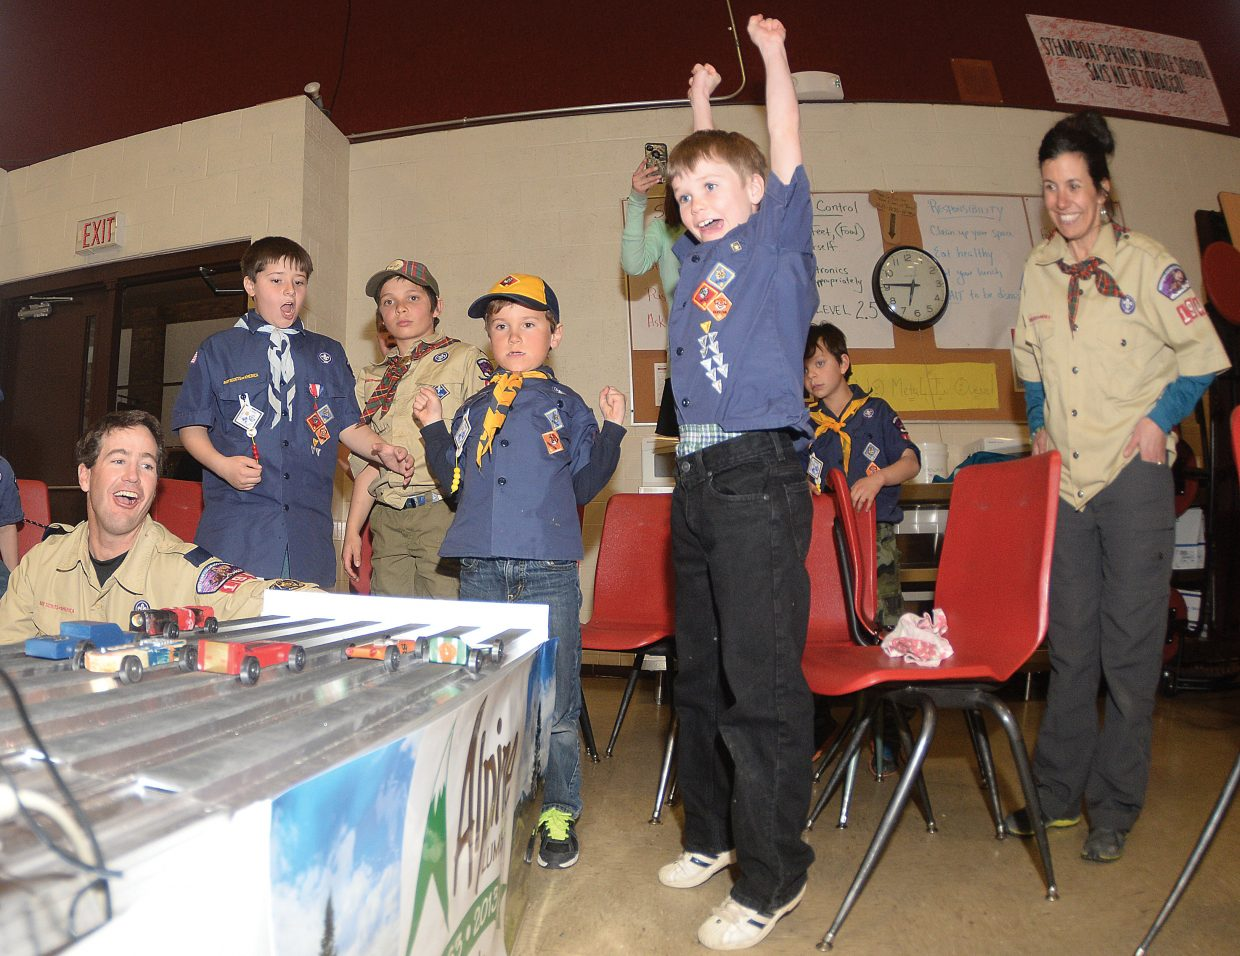 Cub Scout Jayden Patrick celebrates after his car won one of the heats in the finals of the Pinewood Derby on Wednesday evening at Steamboat Springs Middle School. The races are hosted by Cub Scout Troop 194 every year.